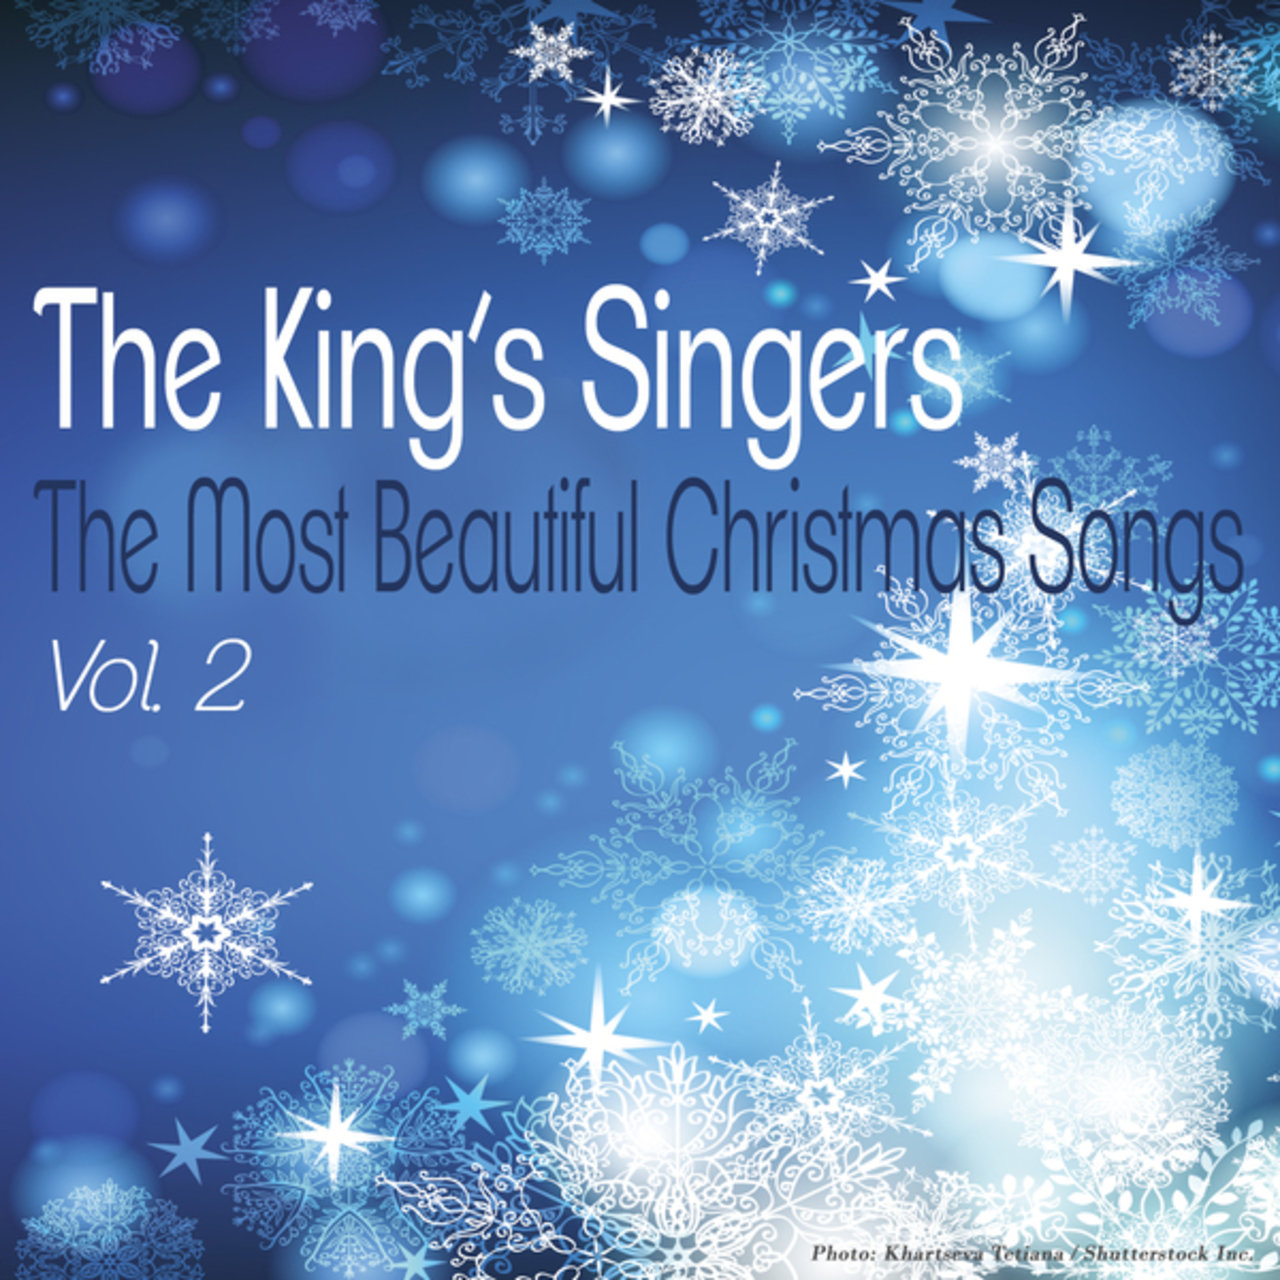 TIDAL: Listen to The Most Beautiful Christmas Songs, Vol. 1 on TIDAL